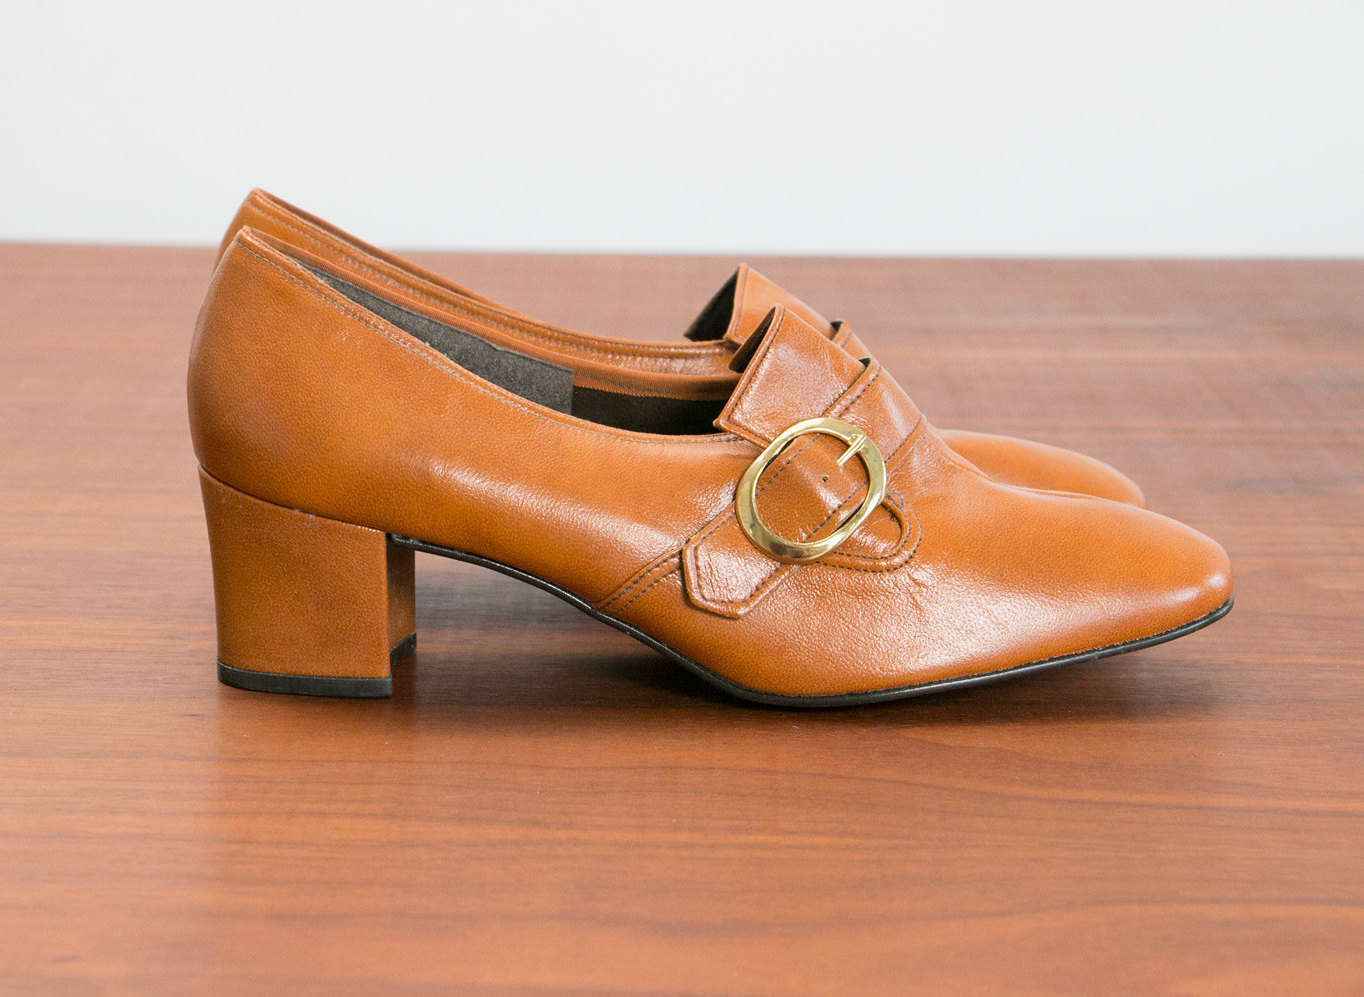 10fa7d0c1248 vintage-1960s-1970s-deadstock-nos-womens-shoes-jcpenney -gaymode-size-8-5-m-leather-tan-heals-mid-century-1.jpg